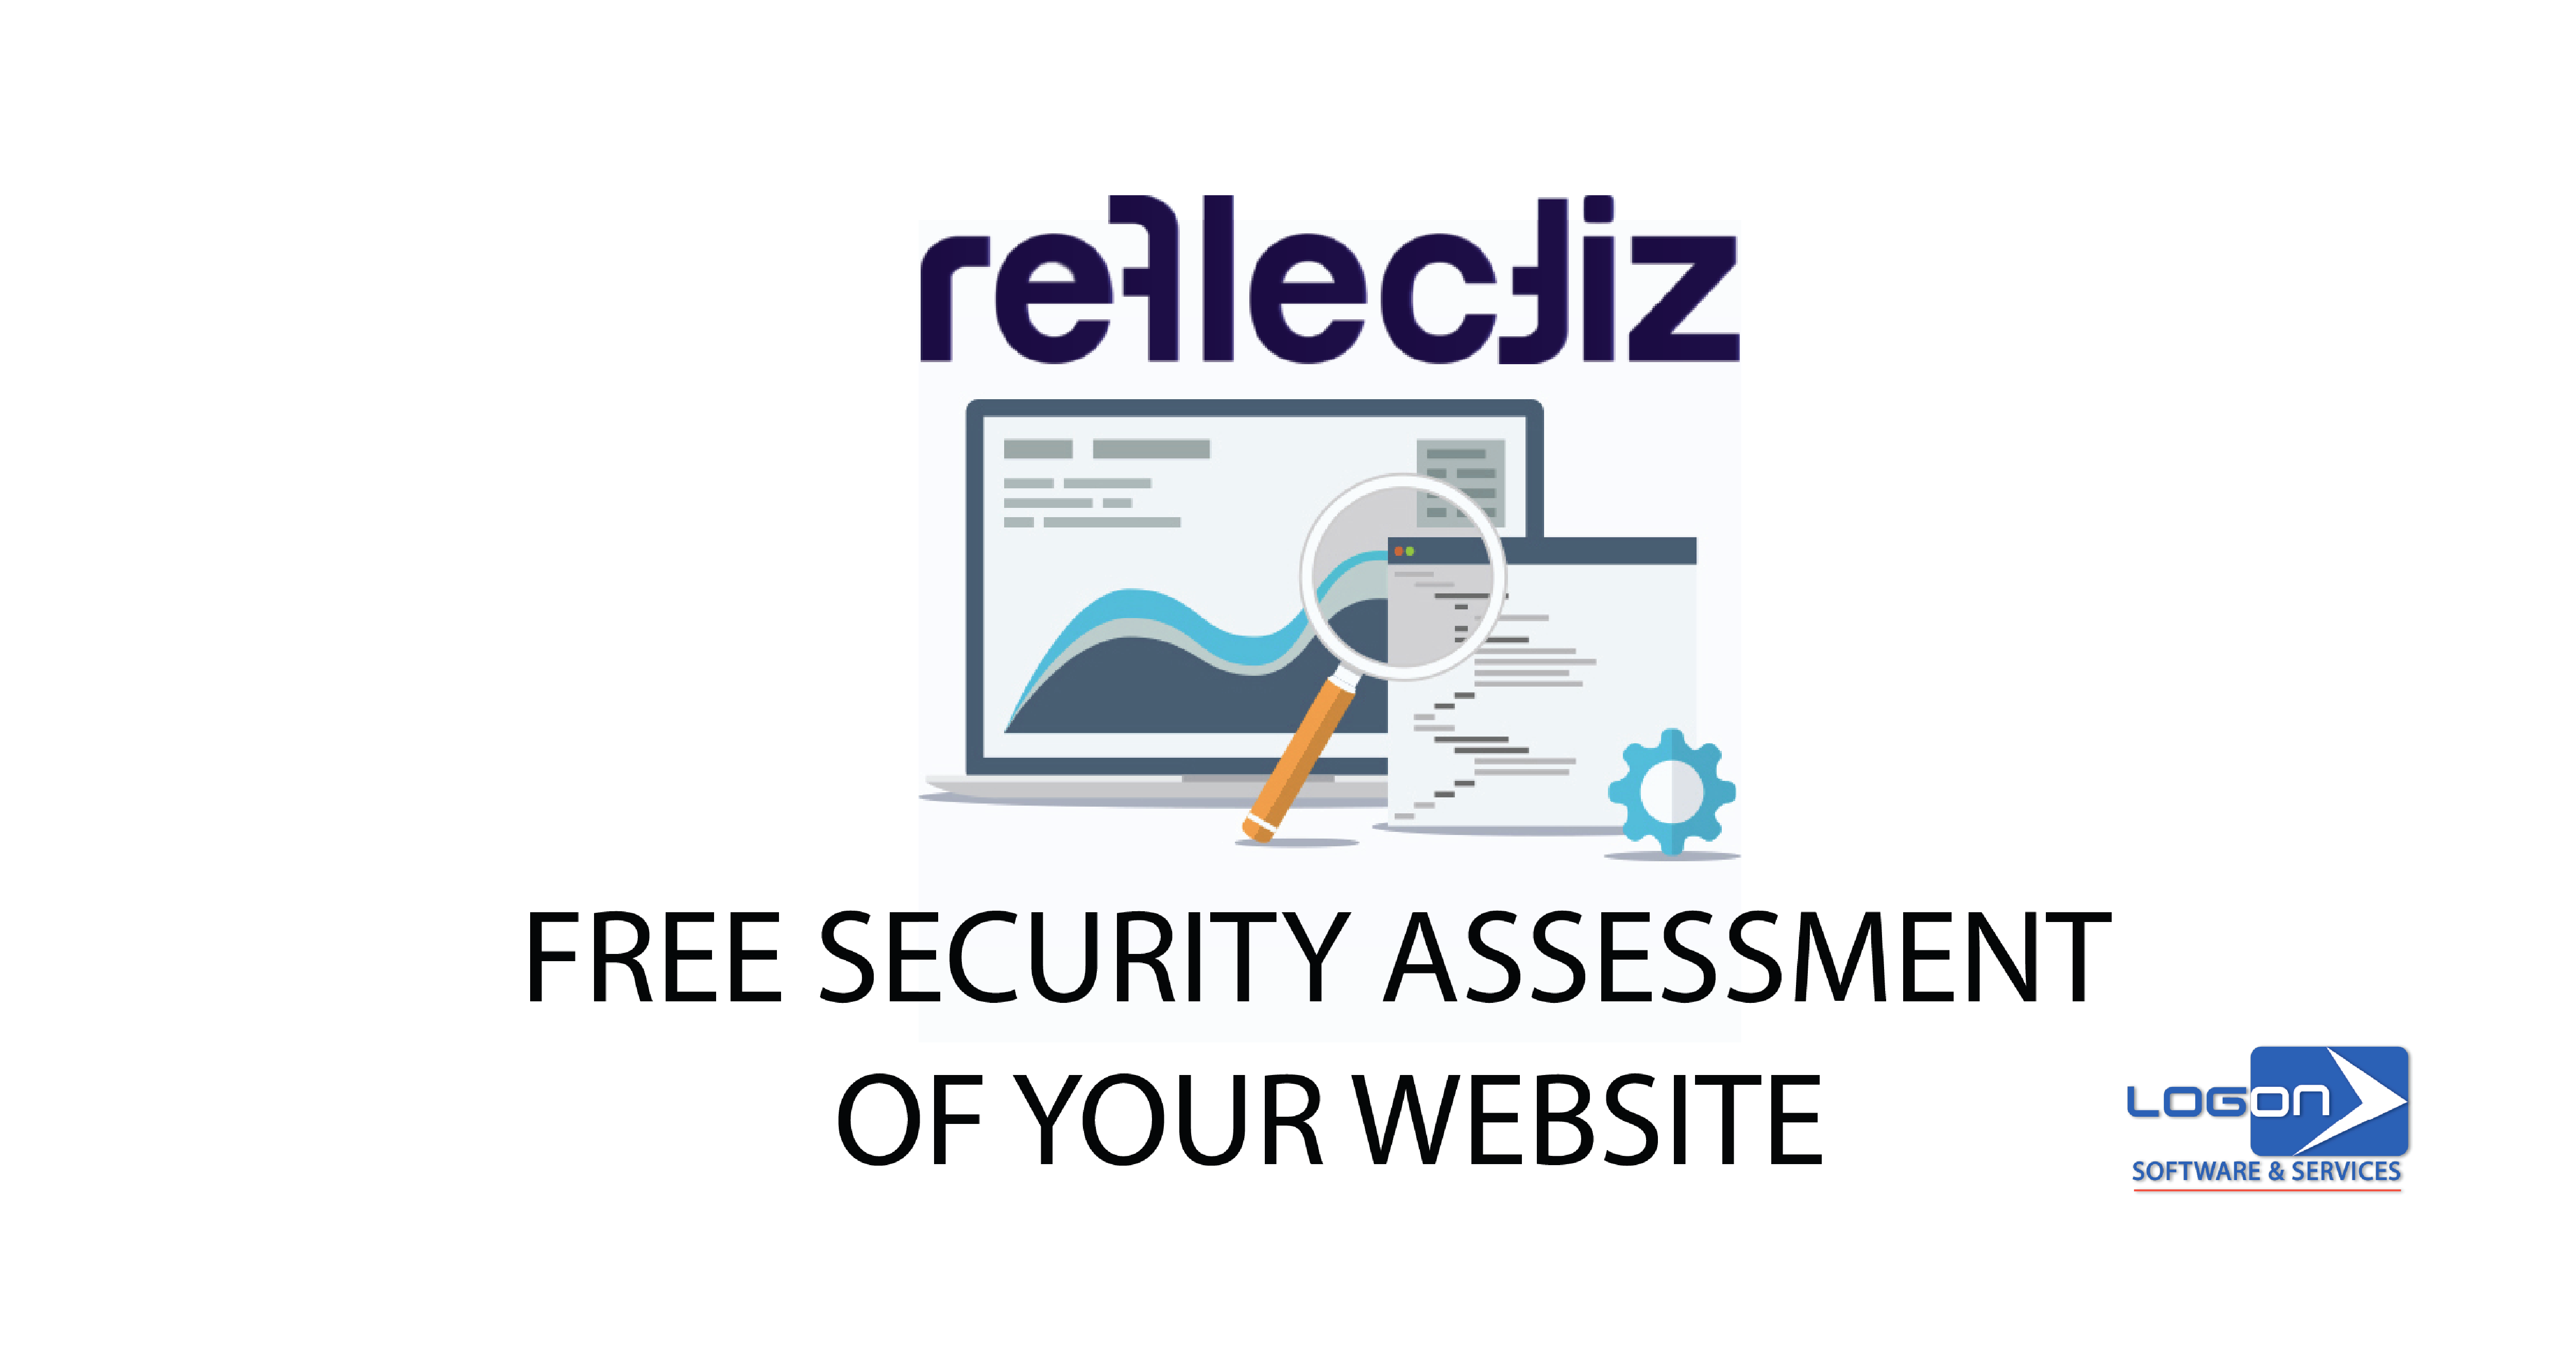 Reflectiz | Free Security Assessment of Your Website